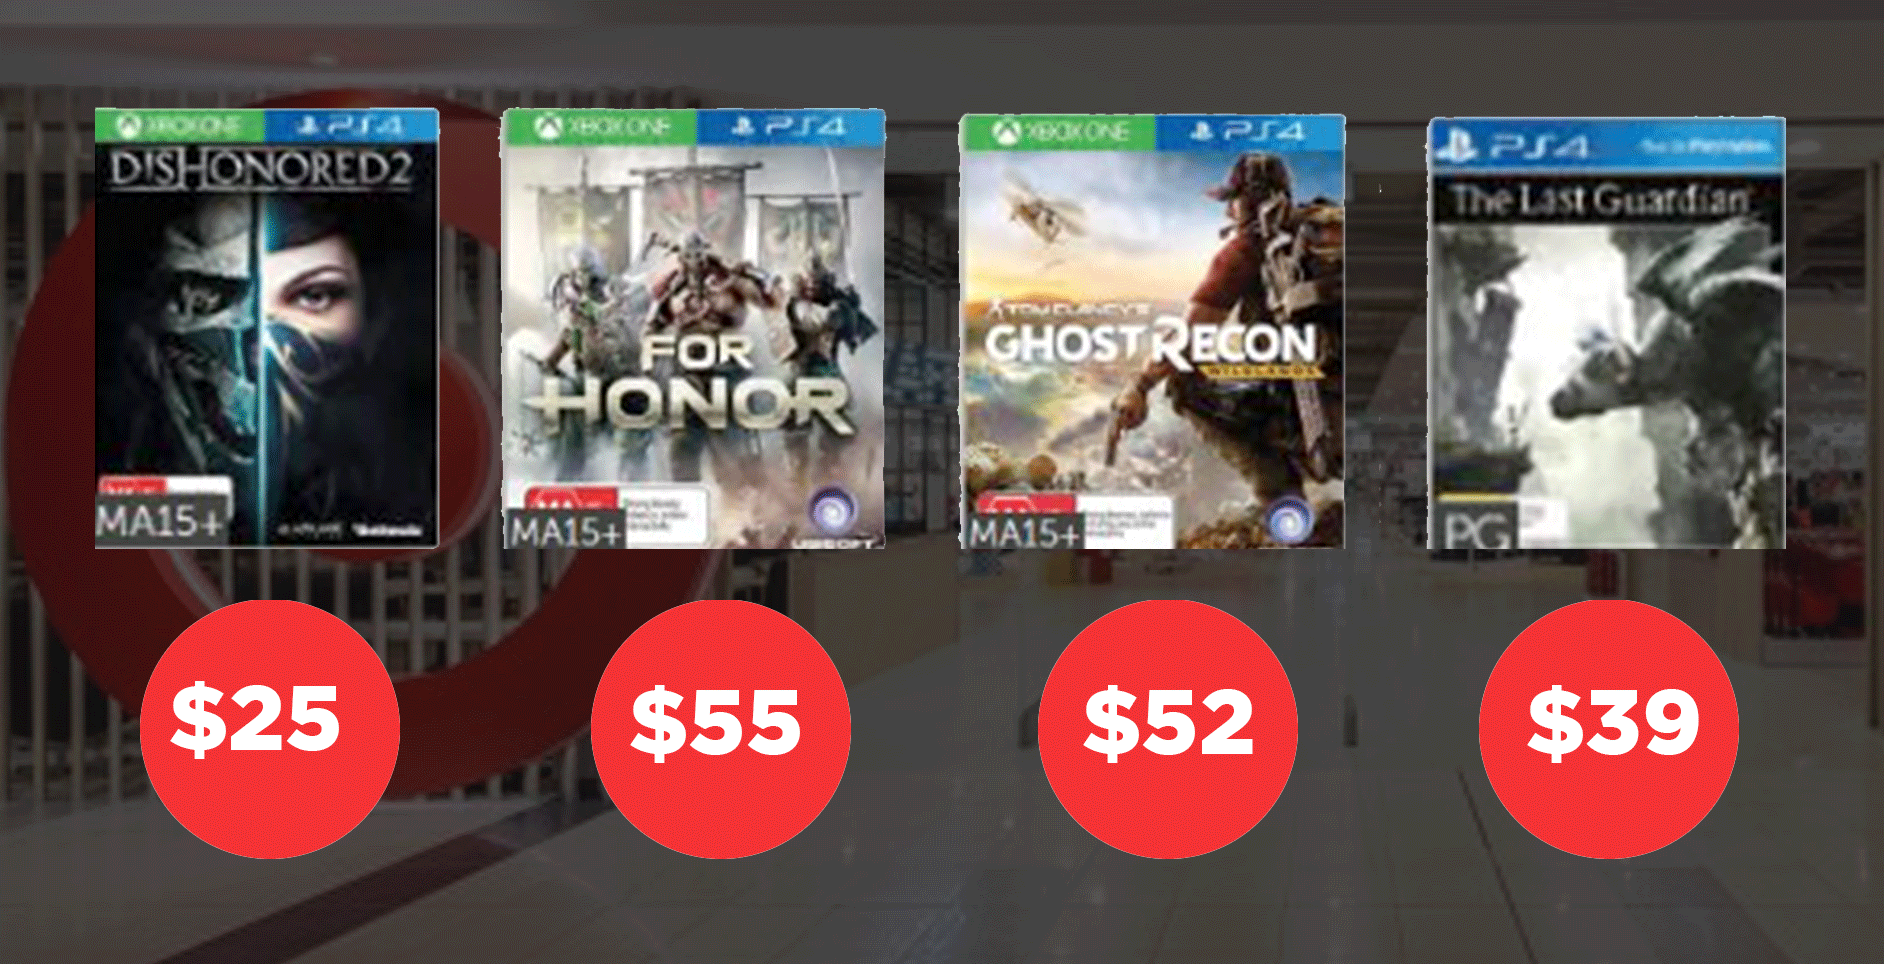 Target is gearing up for another epic gaming price war!